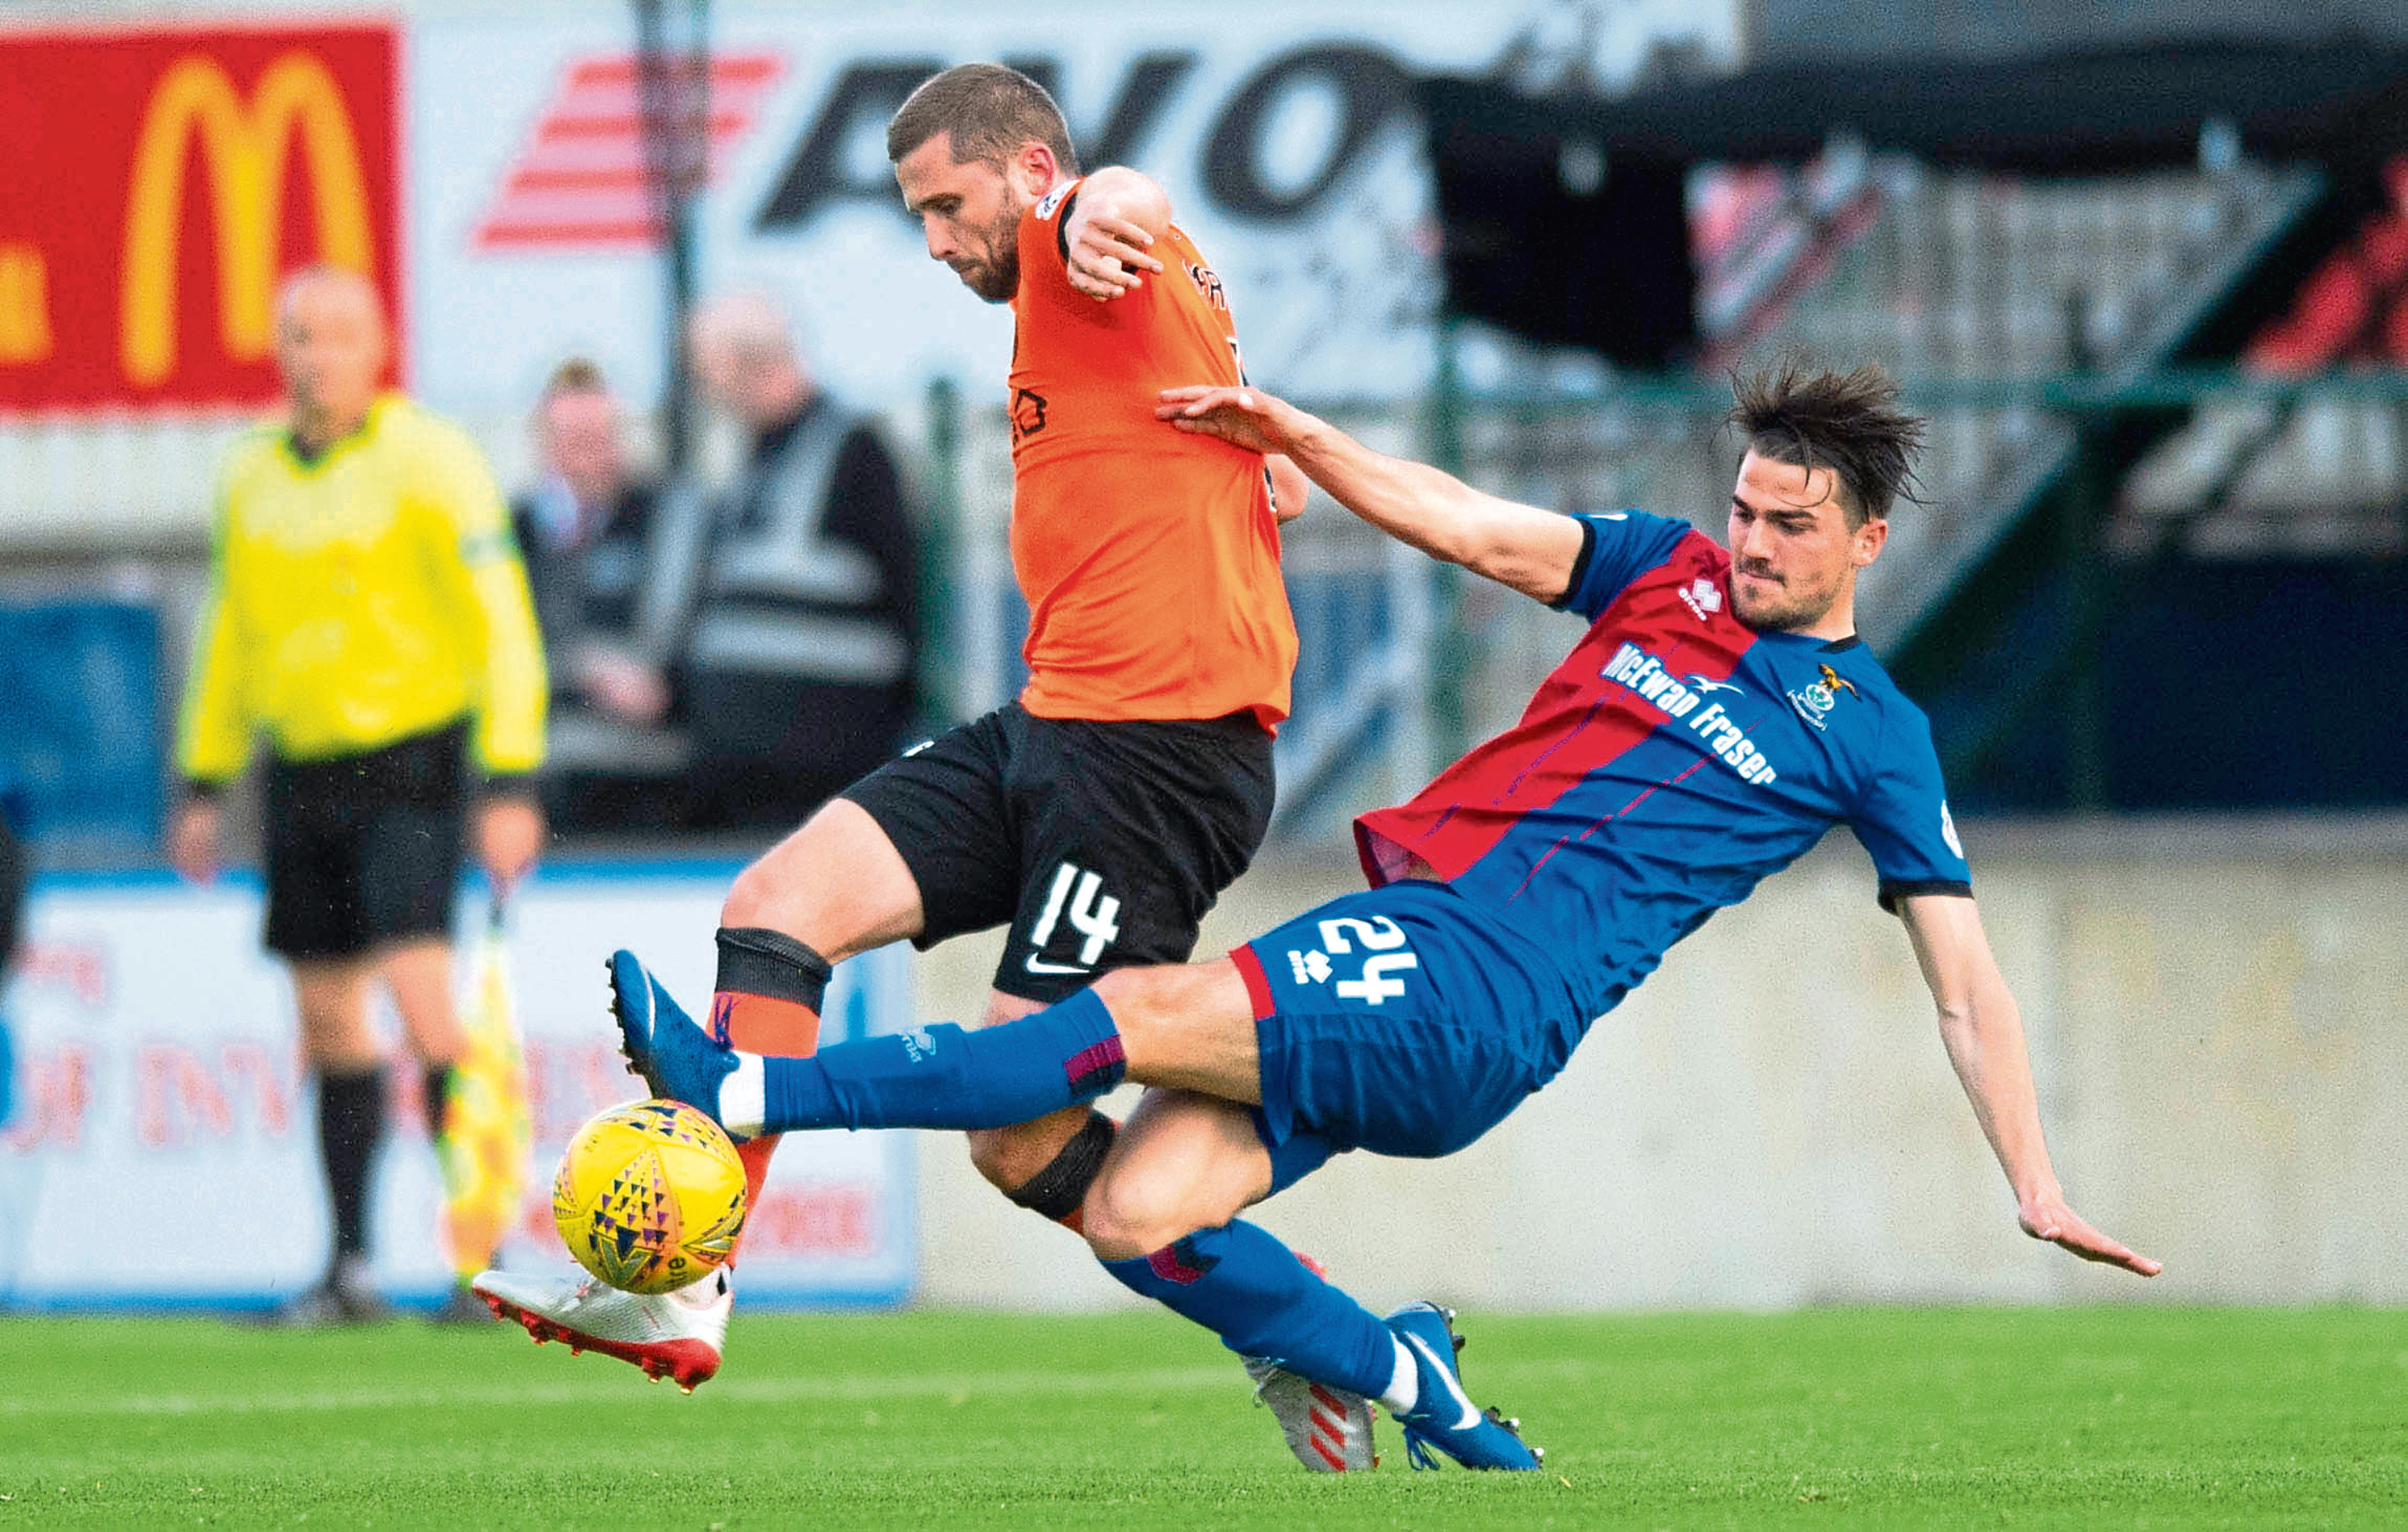 Dundee United striker Pavol Safranko failed to appear for the second half of last night's play-off first leg against Inverness Caley Thistle